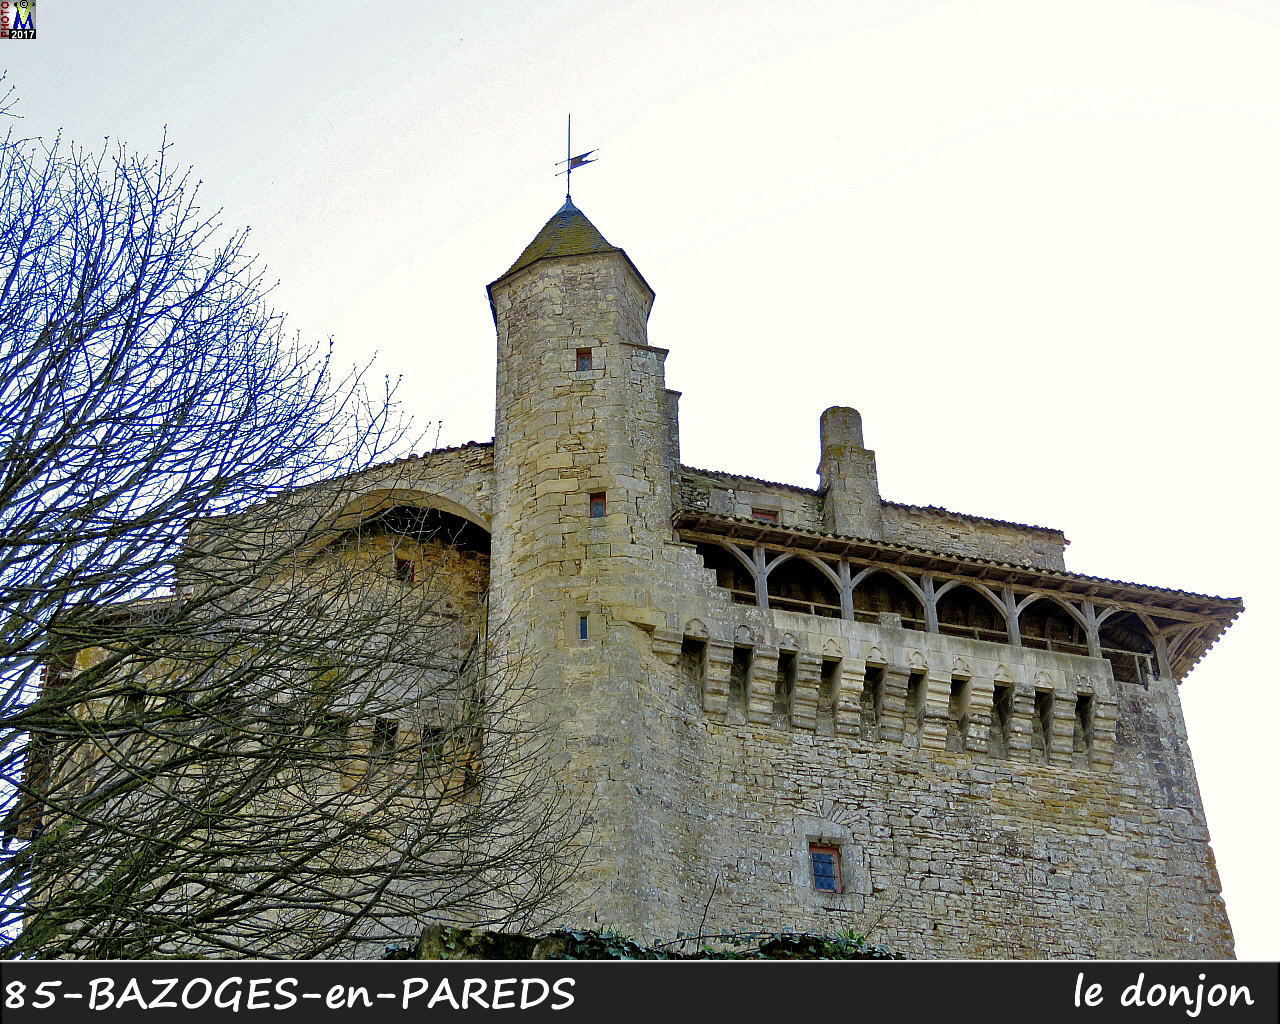 85BAZOGES-PAREDS_donjon_1010.jpg